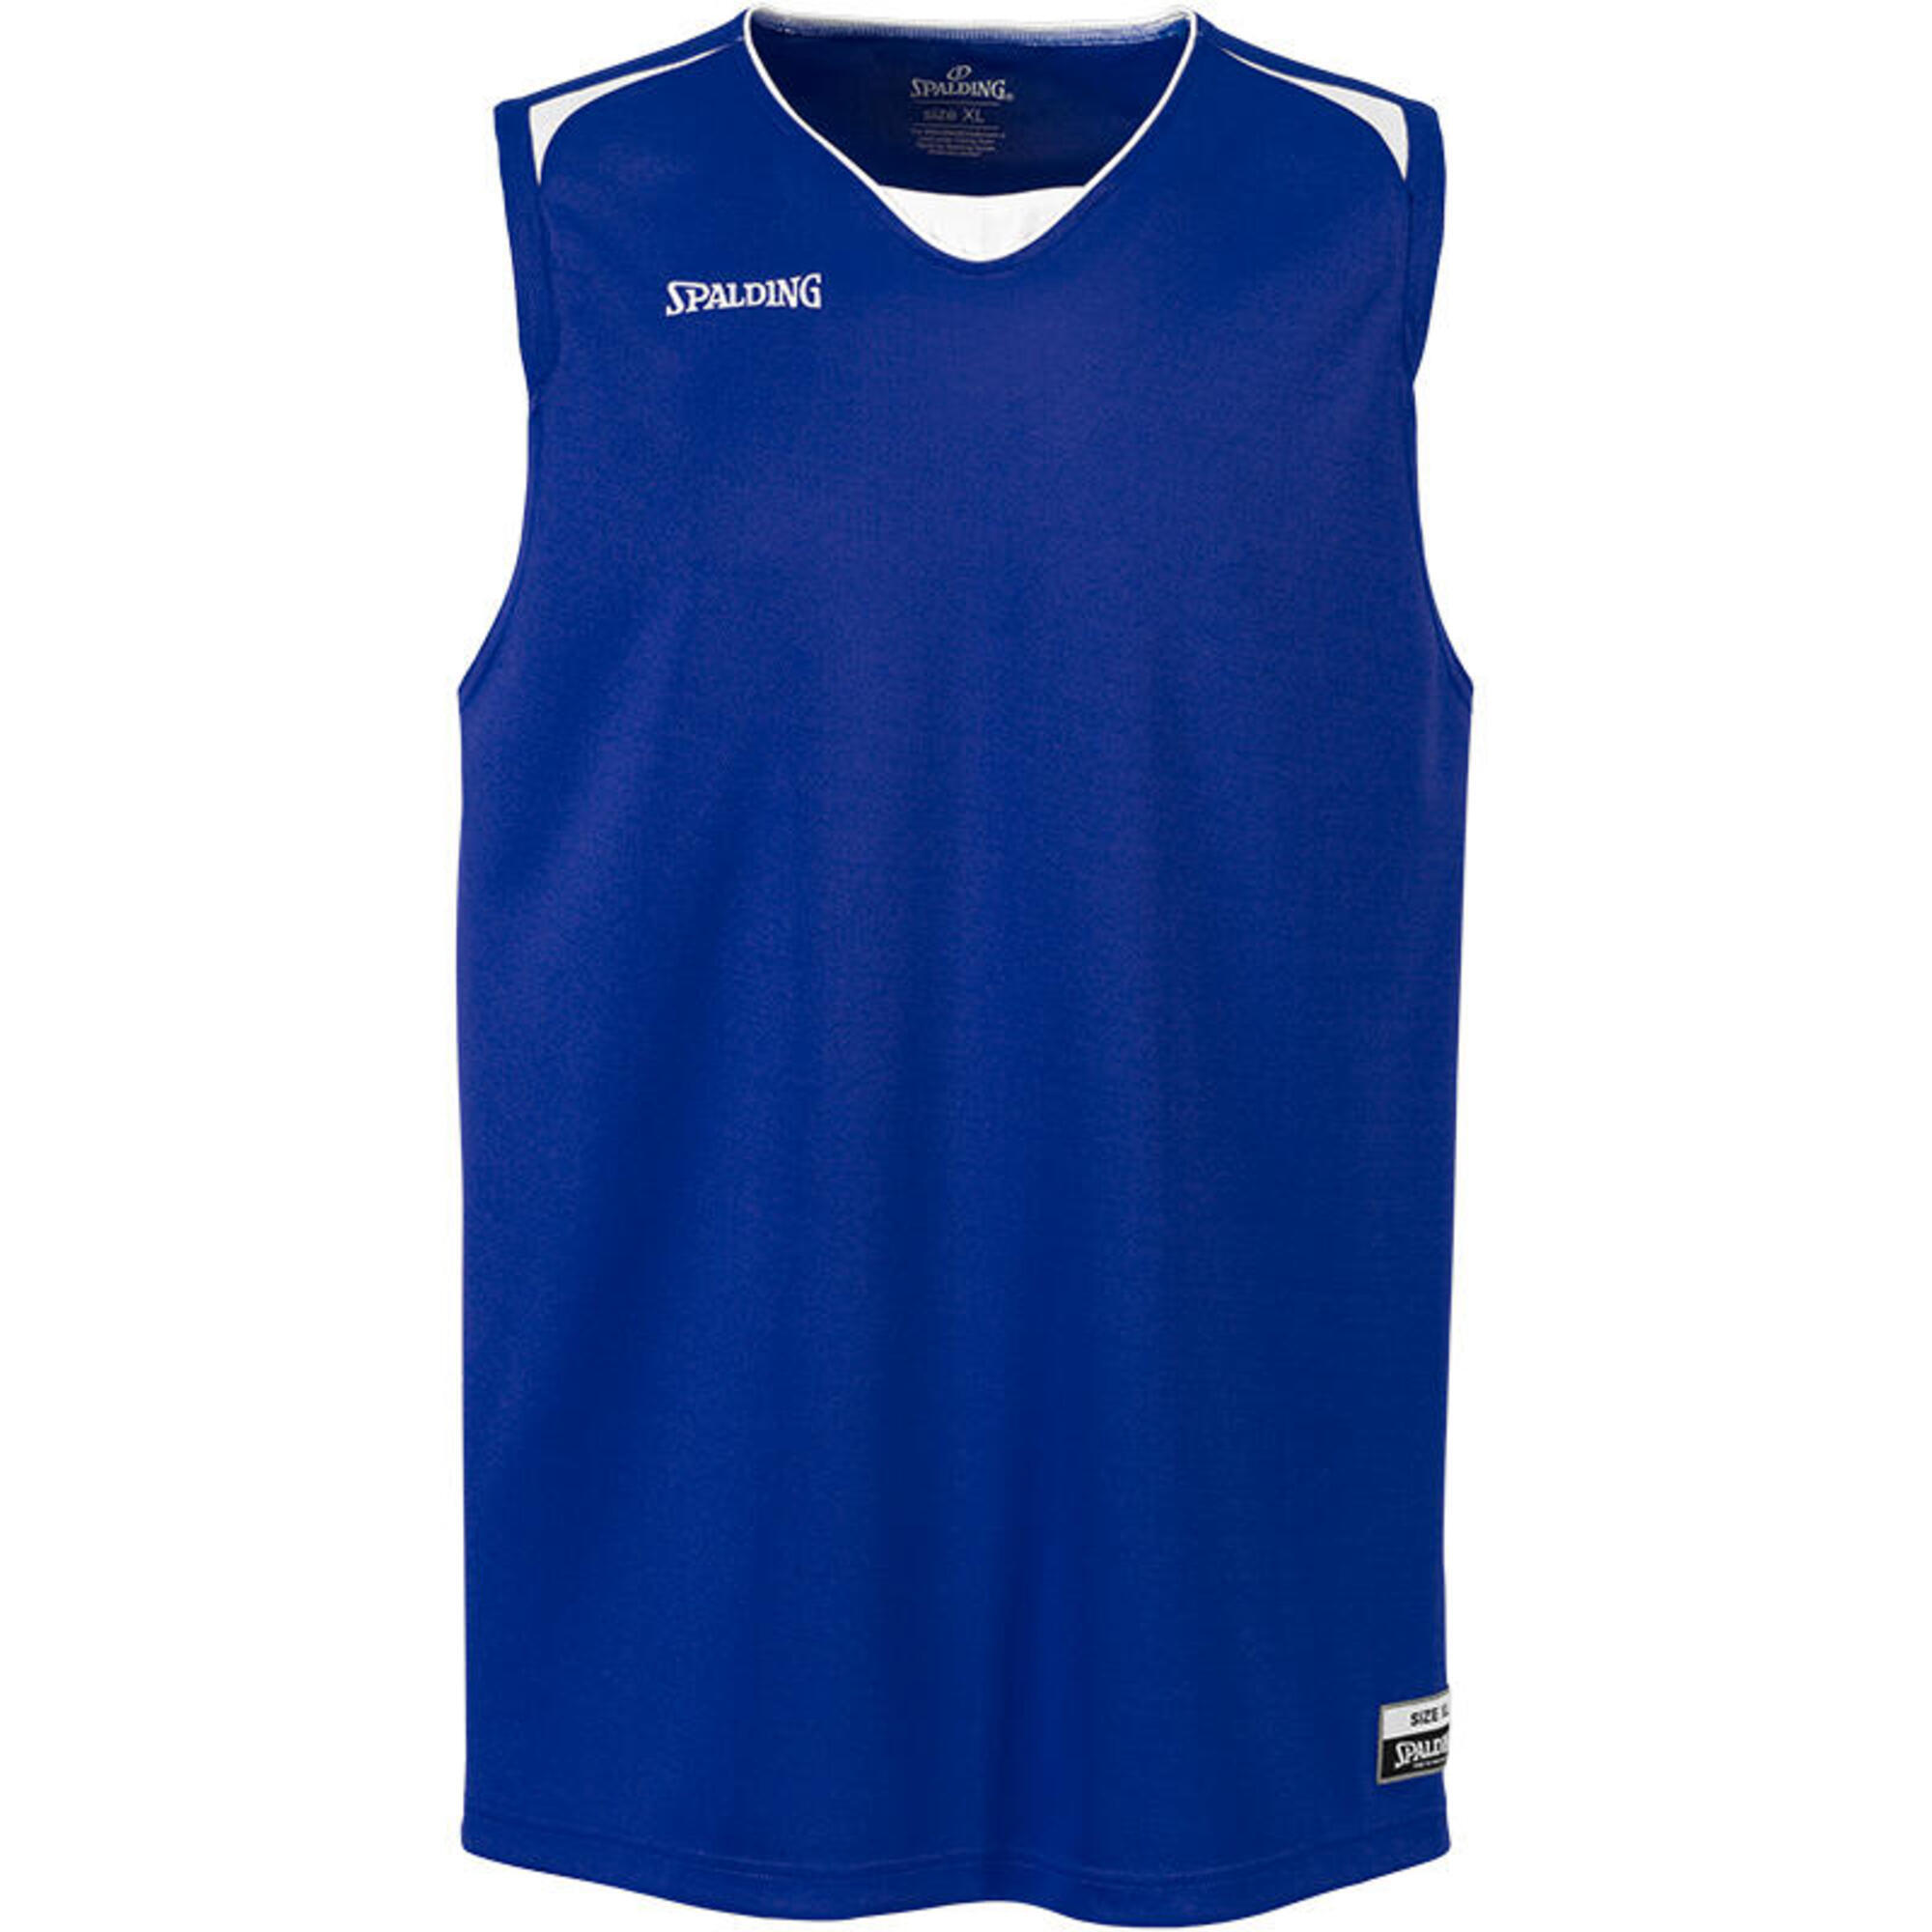 Spalding Attack Jersey